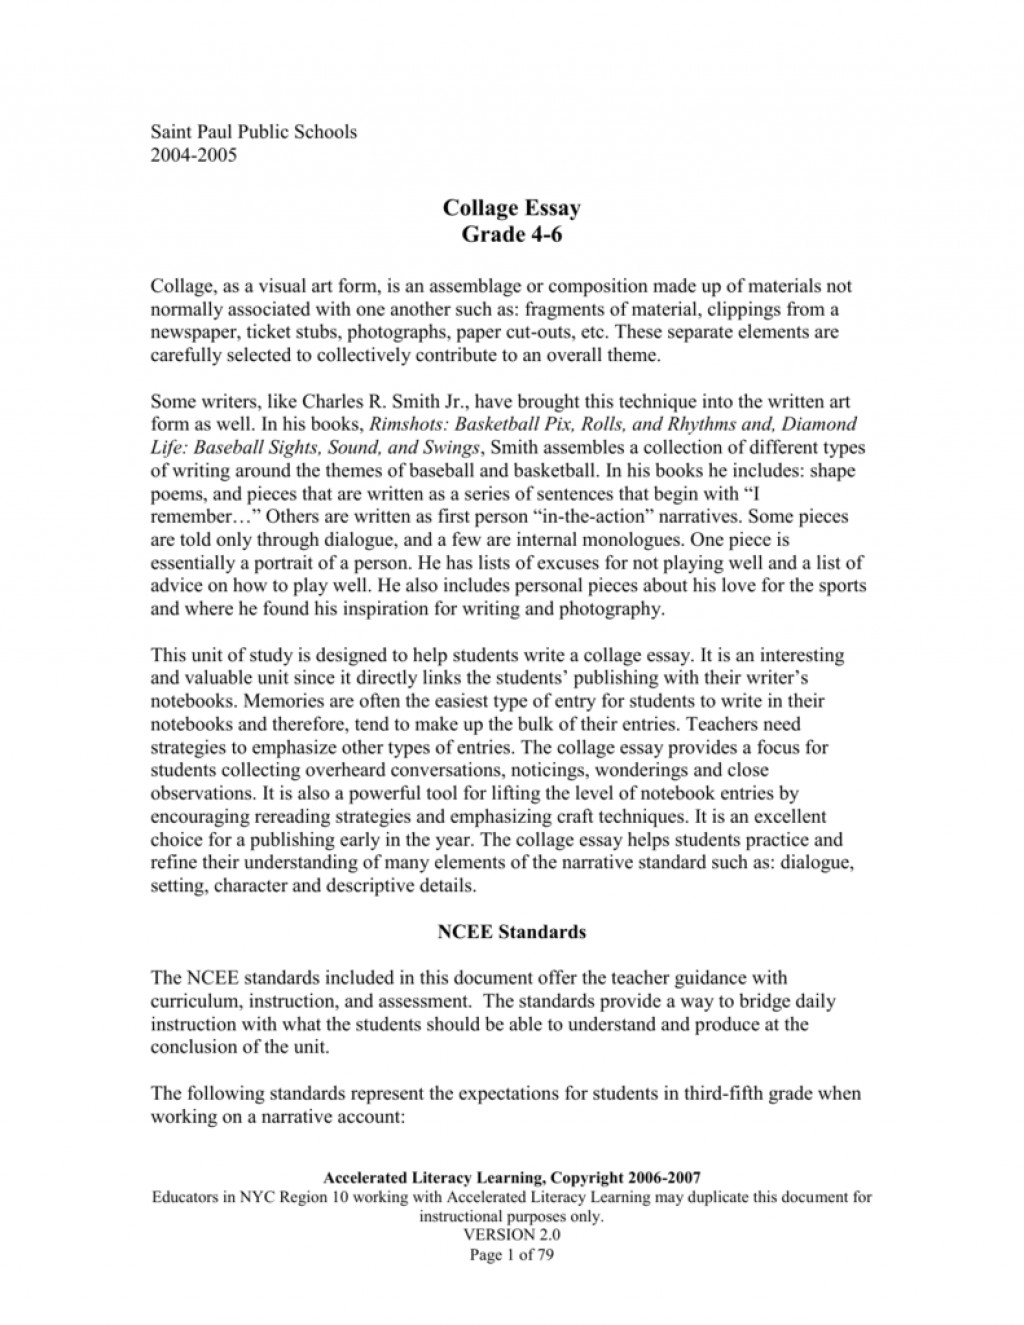 011 Collage Essays 008063715 1 Unbelievable Essay Examples Large